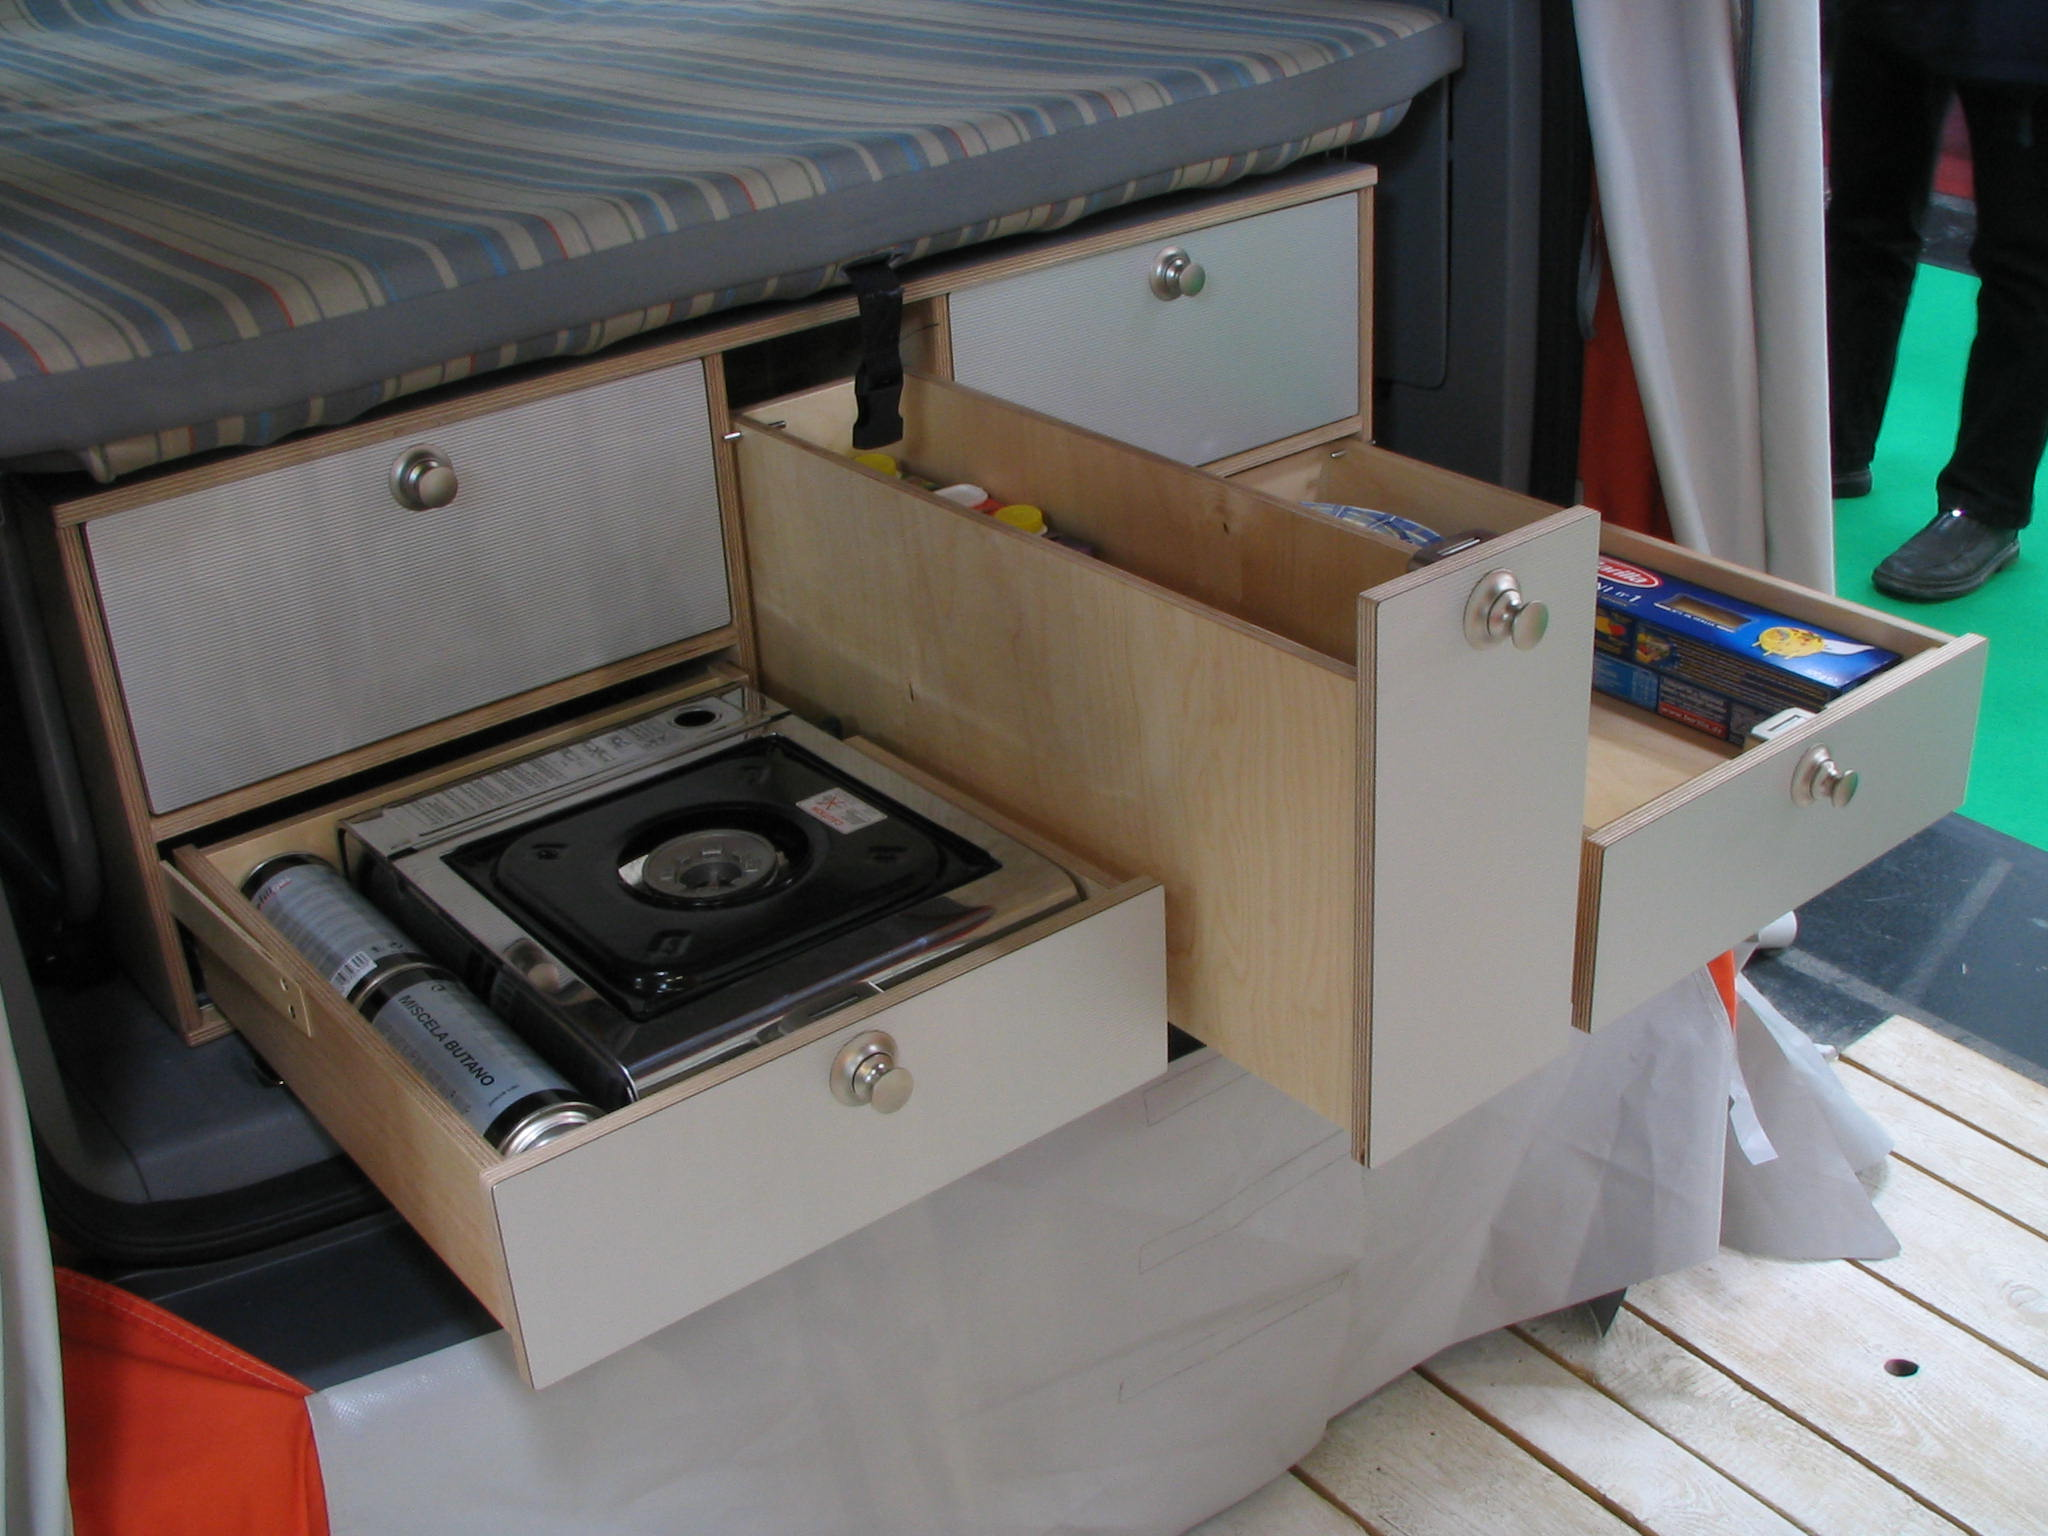 Vw caddy cing equipmentin comparison to the kitchen in the vw bus